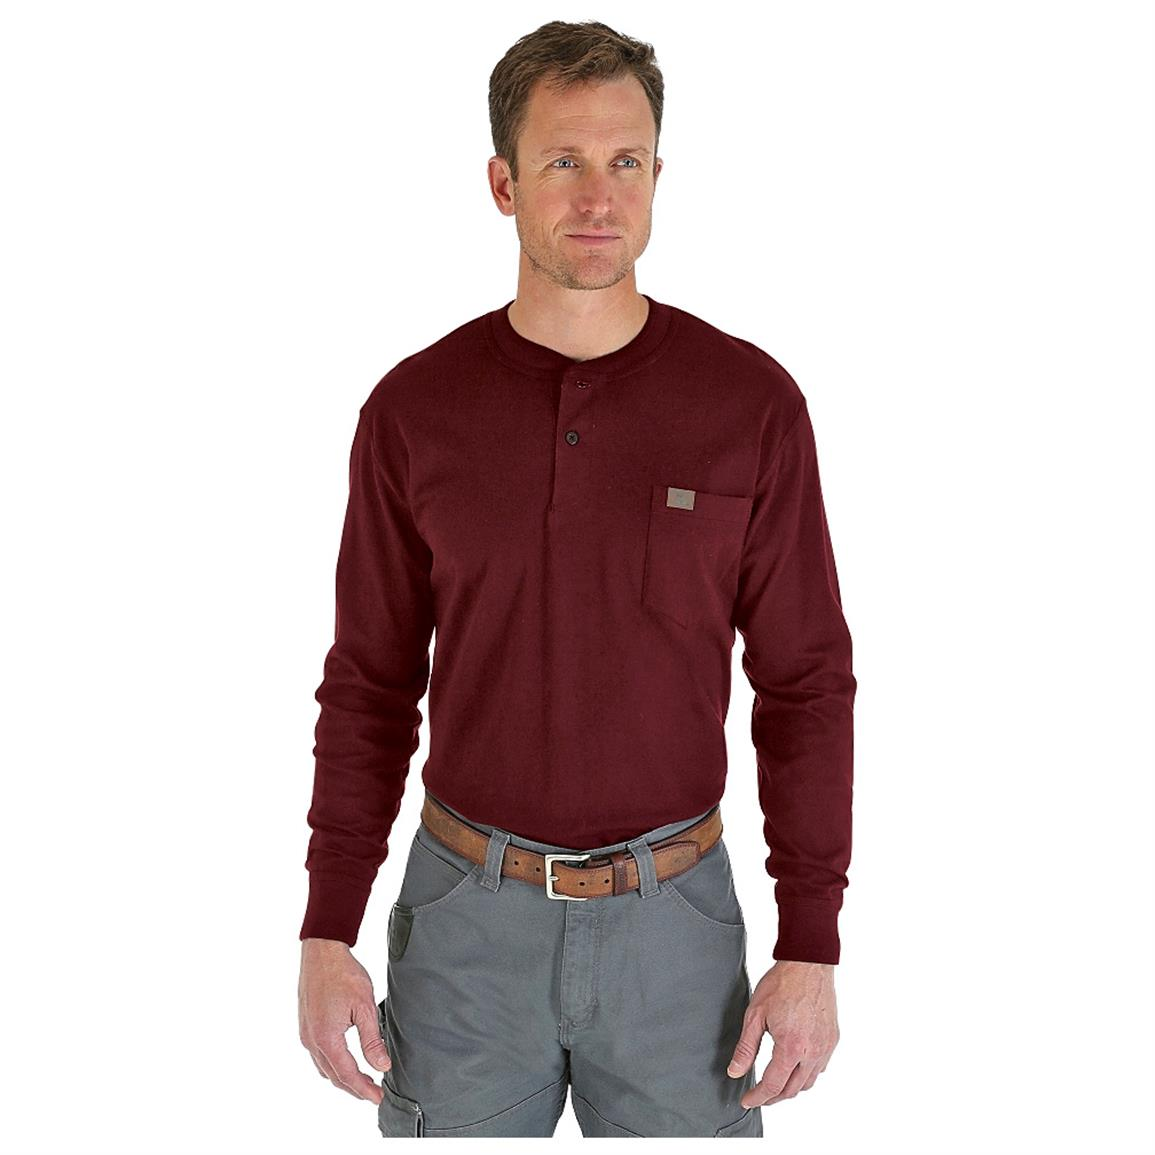 Wrangler RIGGS Workwear Long Sleeve Henley Shirt, Burgundy